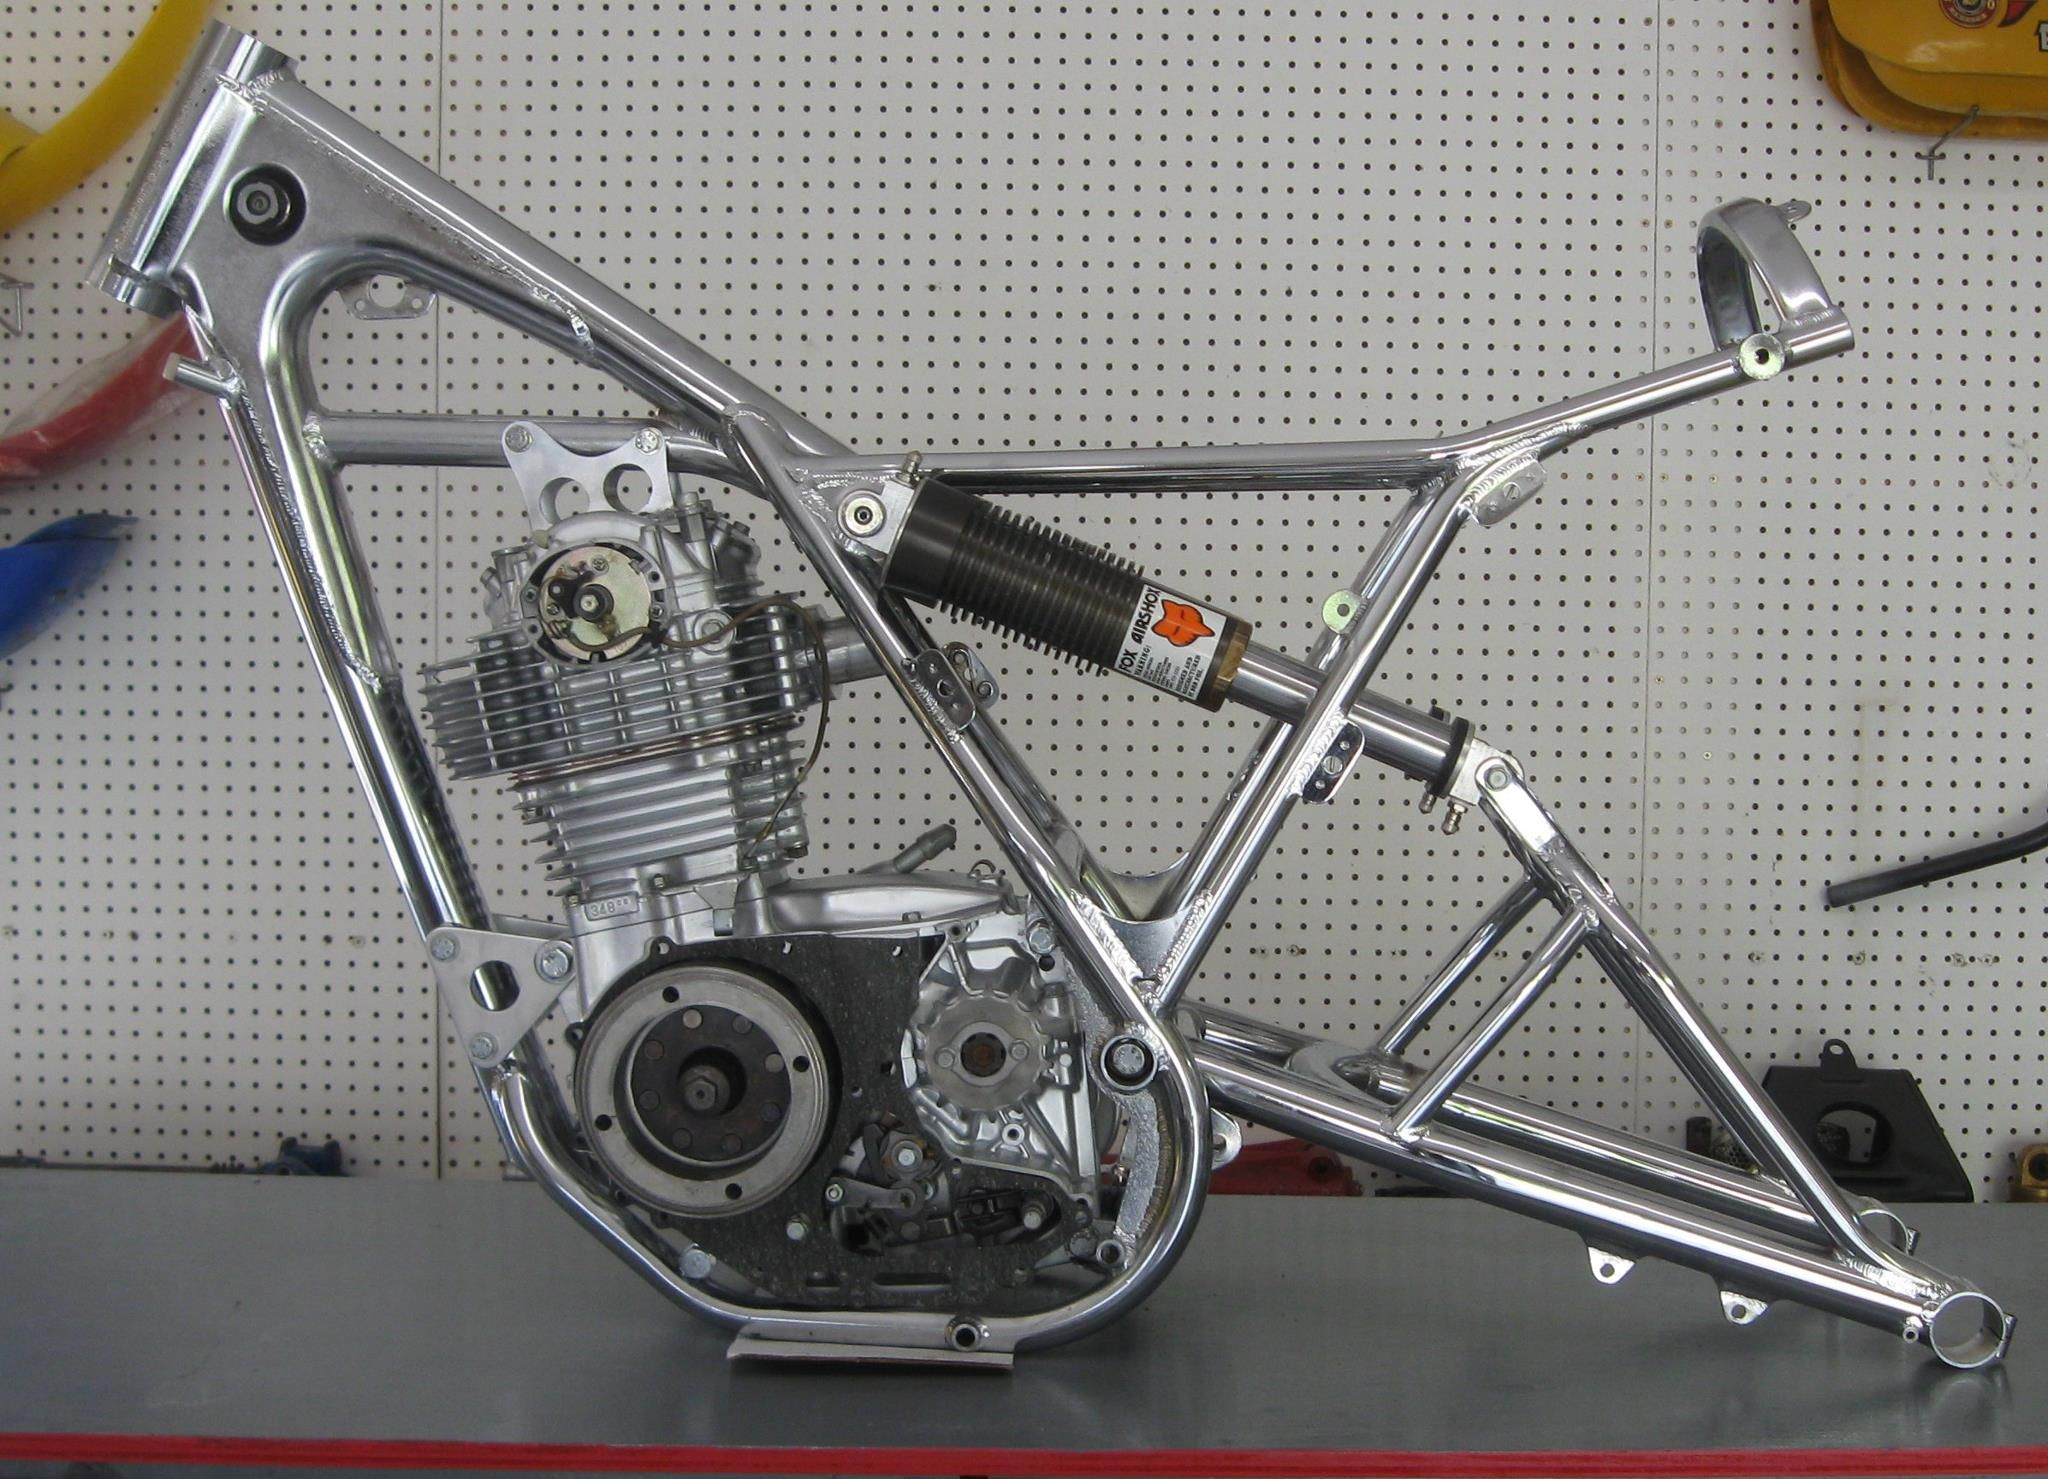 Kramer Frame for Honda XR500 | VINTAGE DIRT | Pinterest | Honda ...